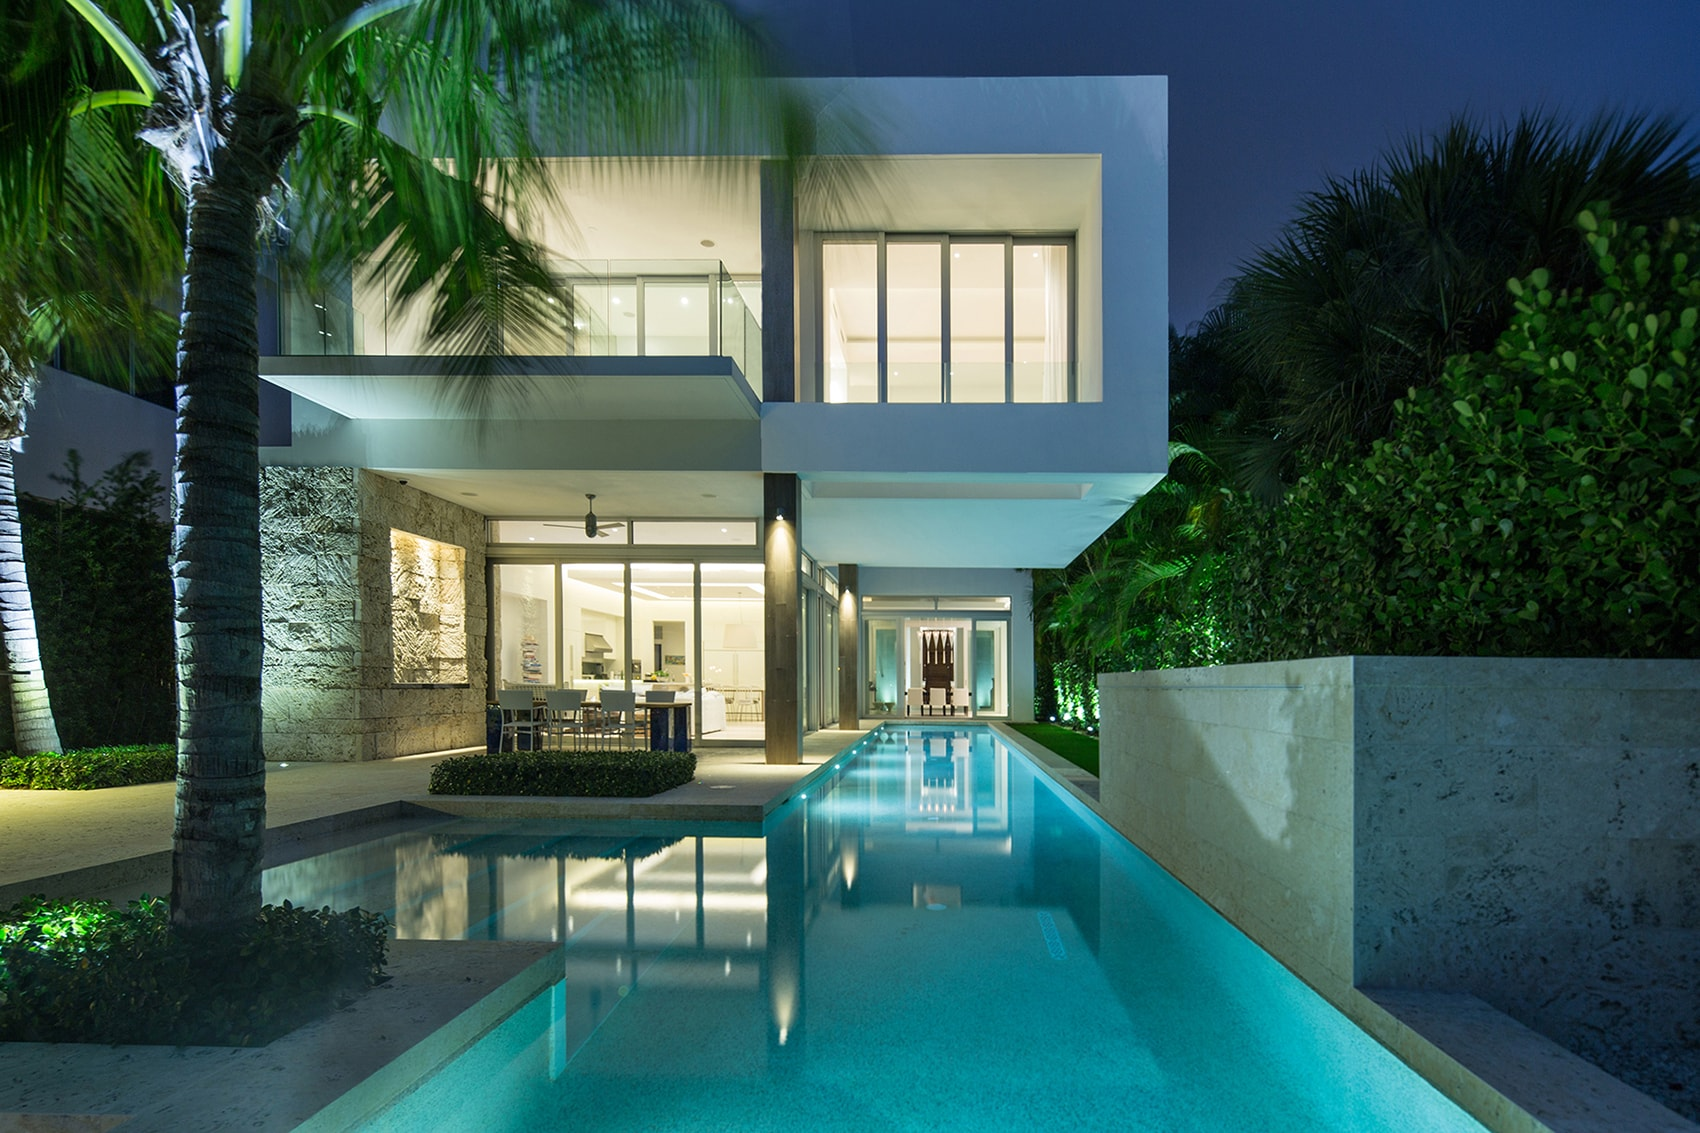 Amazing houses living modern with style architecture beast for The most modern house